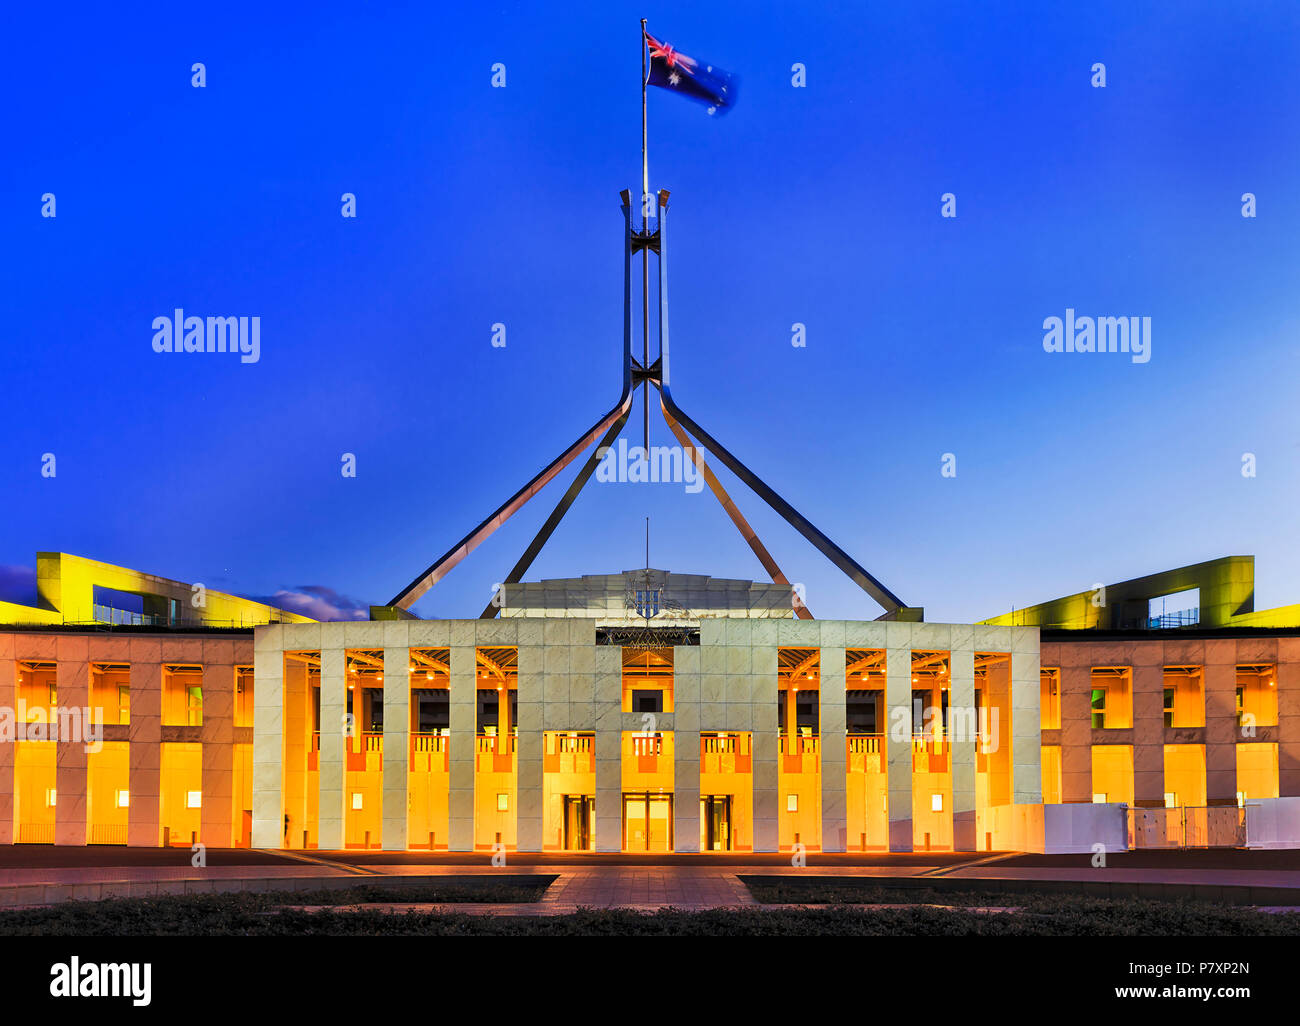 Facade and national flag on tall flagpole over modern acting australian parlament in Canberra capital city with bright illumination at sunset against  - Stock Image